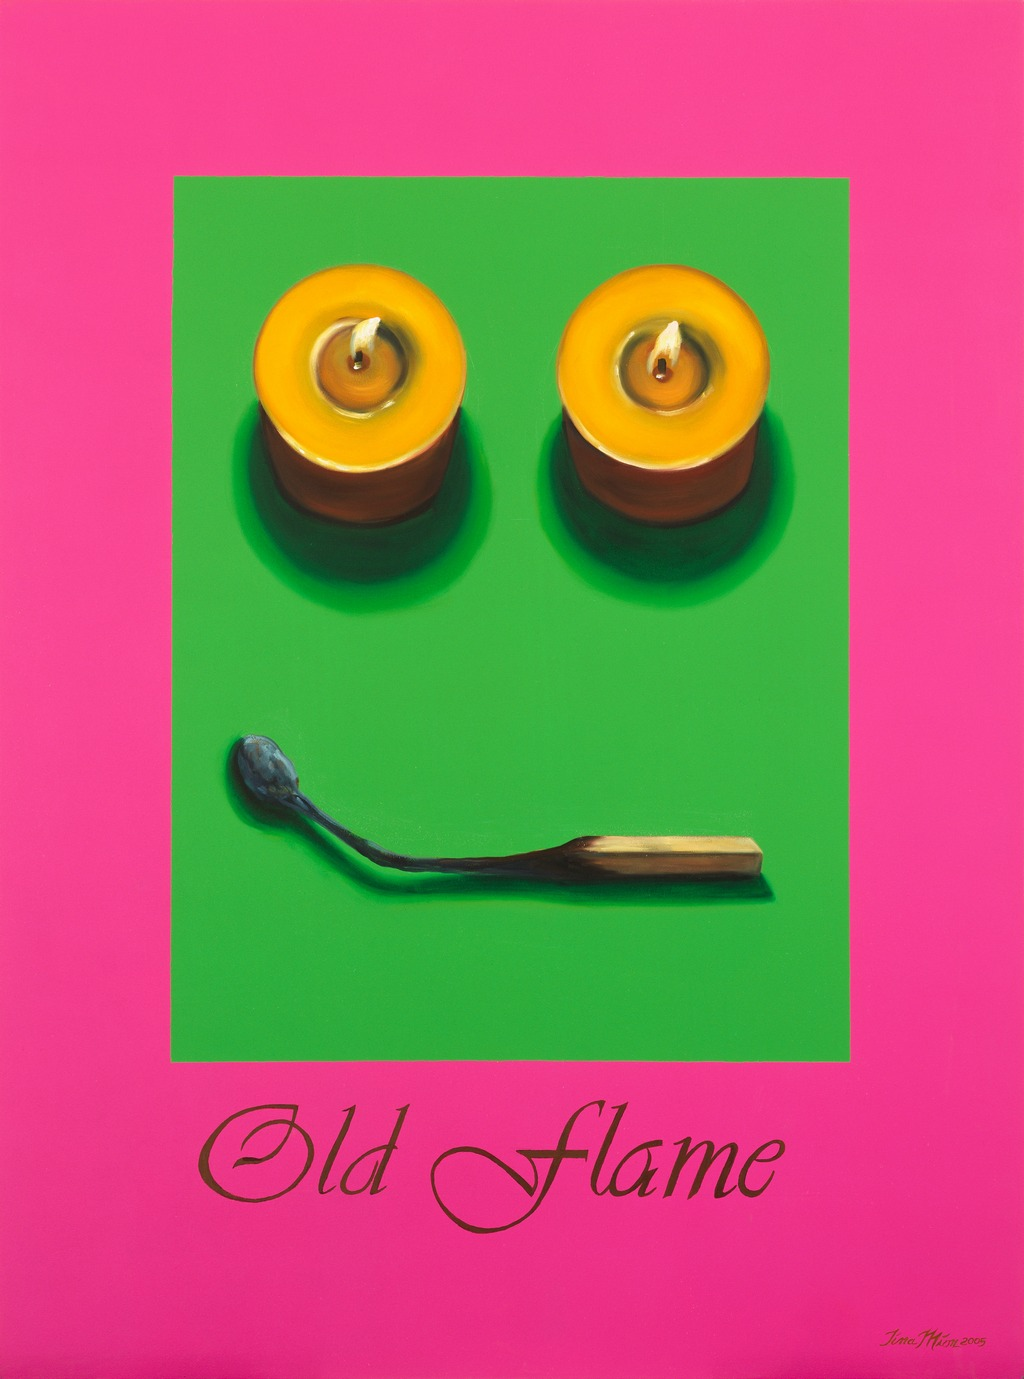 Old Flame Tina mIon art objects